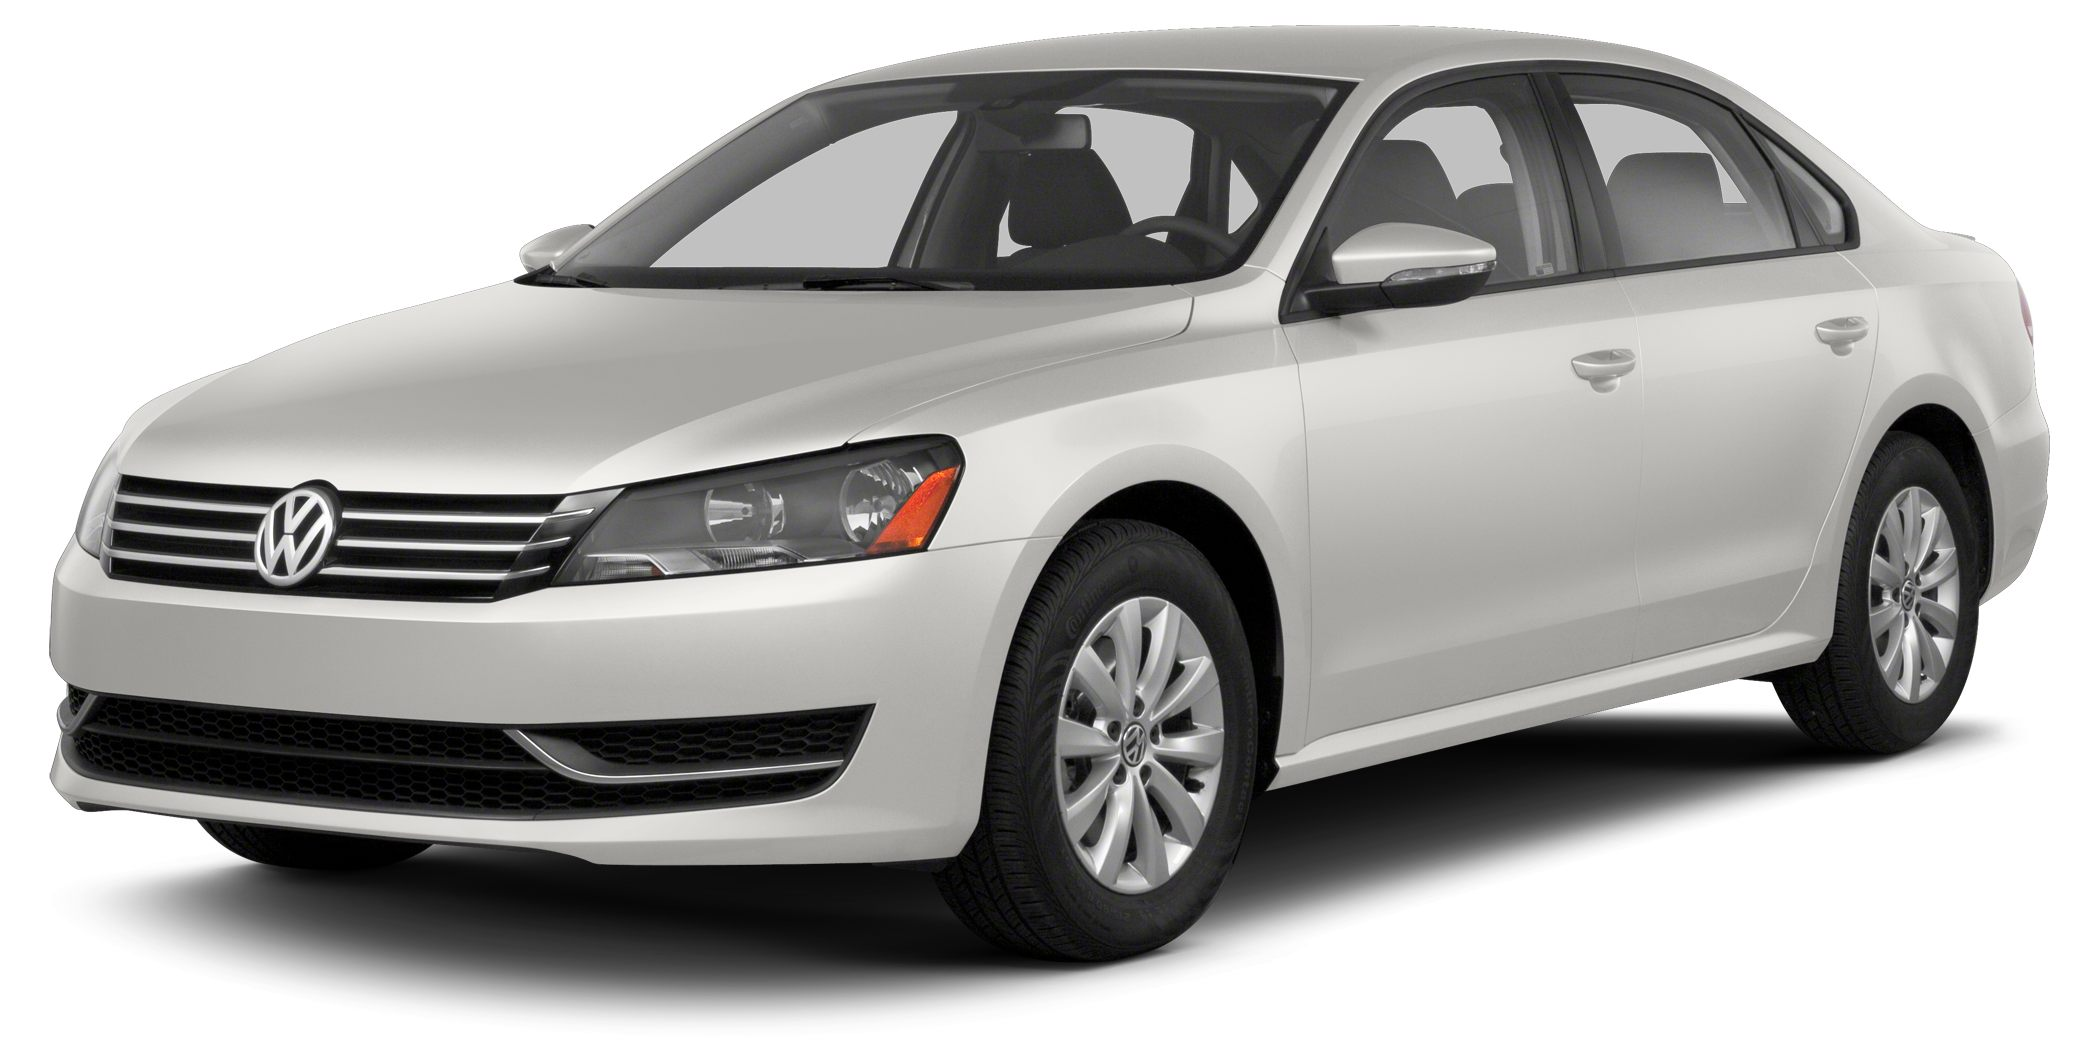 2013 Volkswagen Passat 36 SEL Premium  NEW BRAKES LEATHER and SUNROOF Moonrock wP